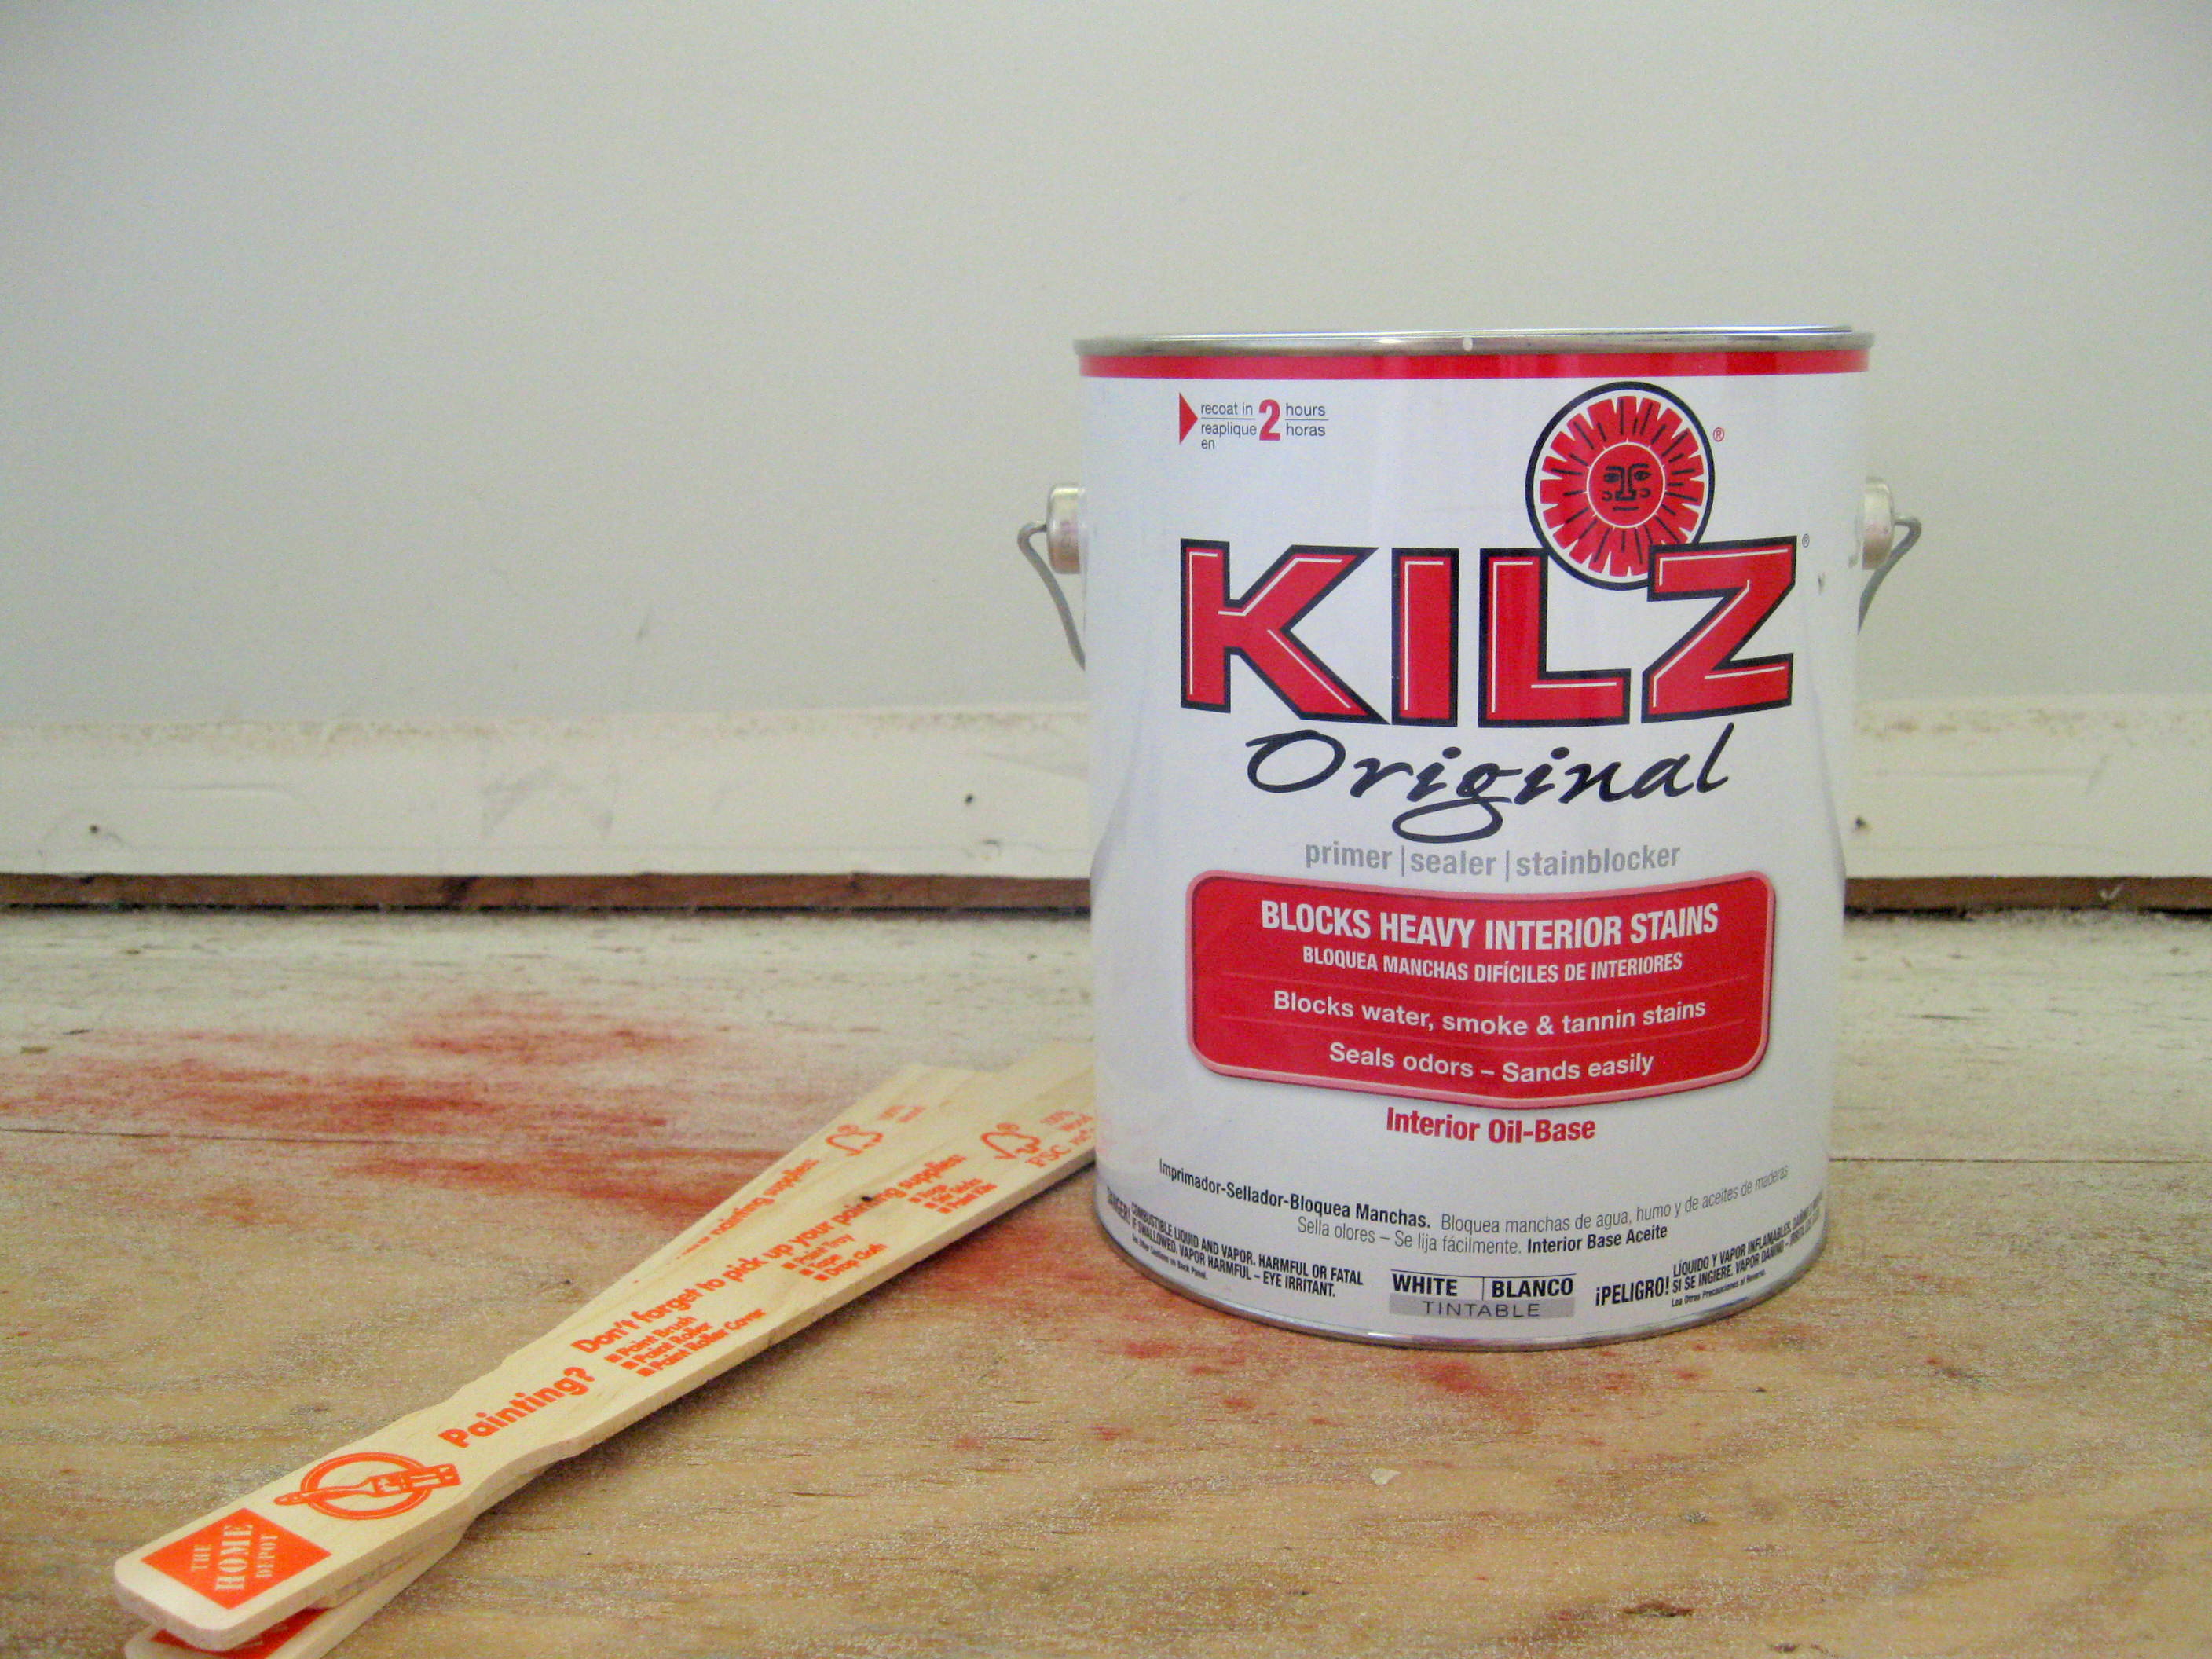 Eliminating Cat Urine Odor | A Kilz Original Review - Mrs  Fancee